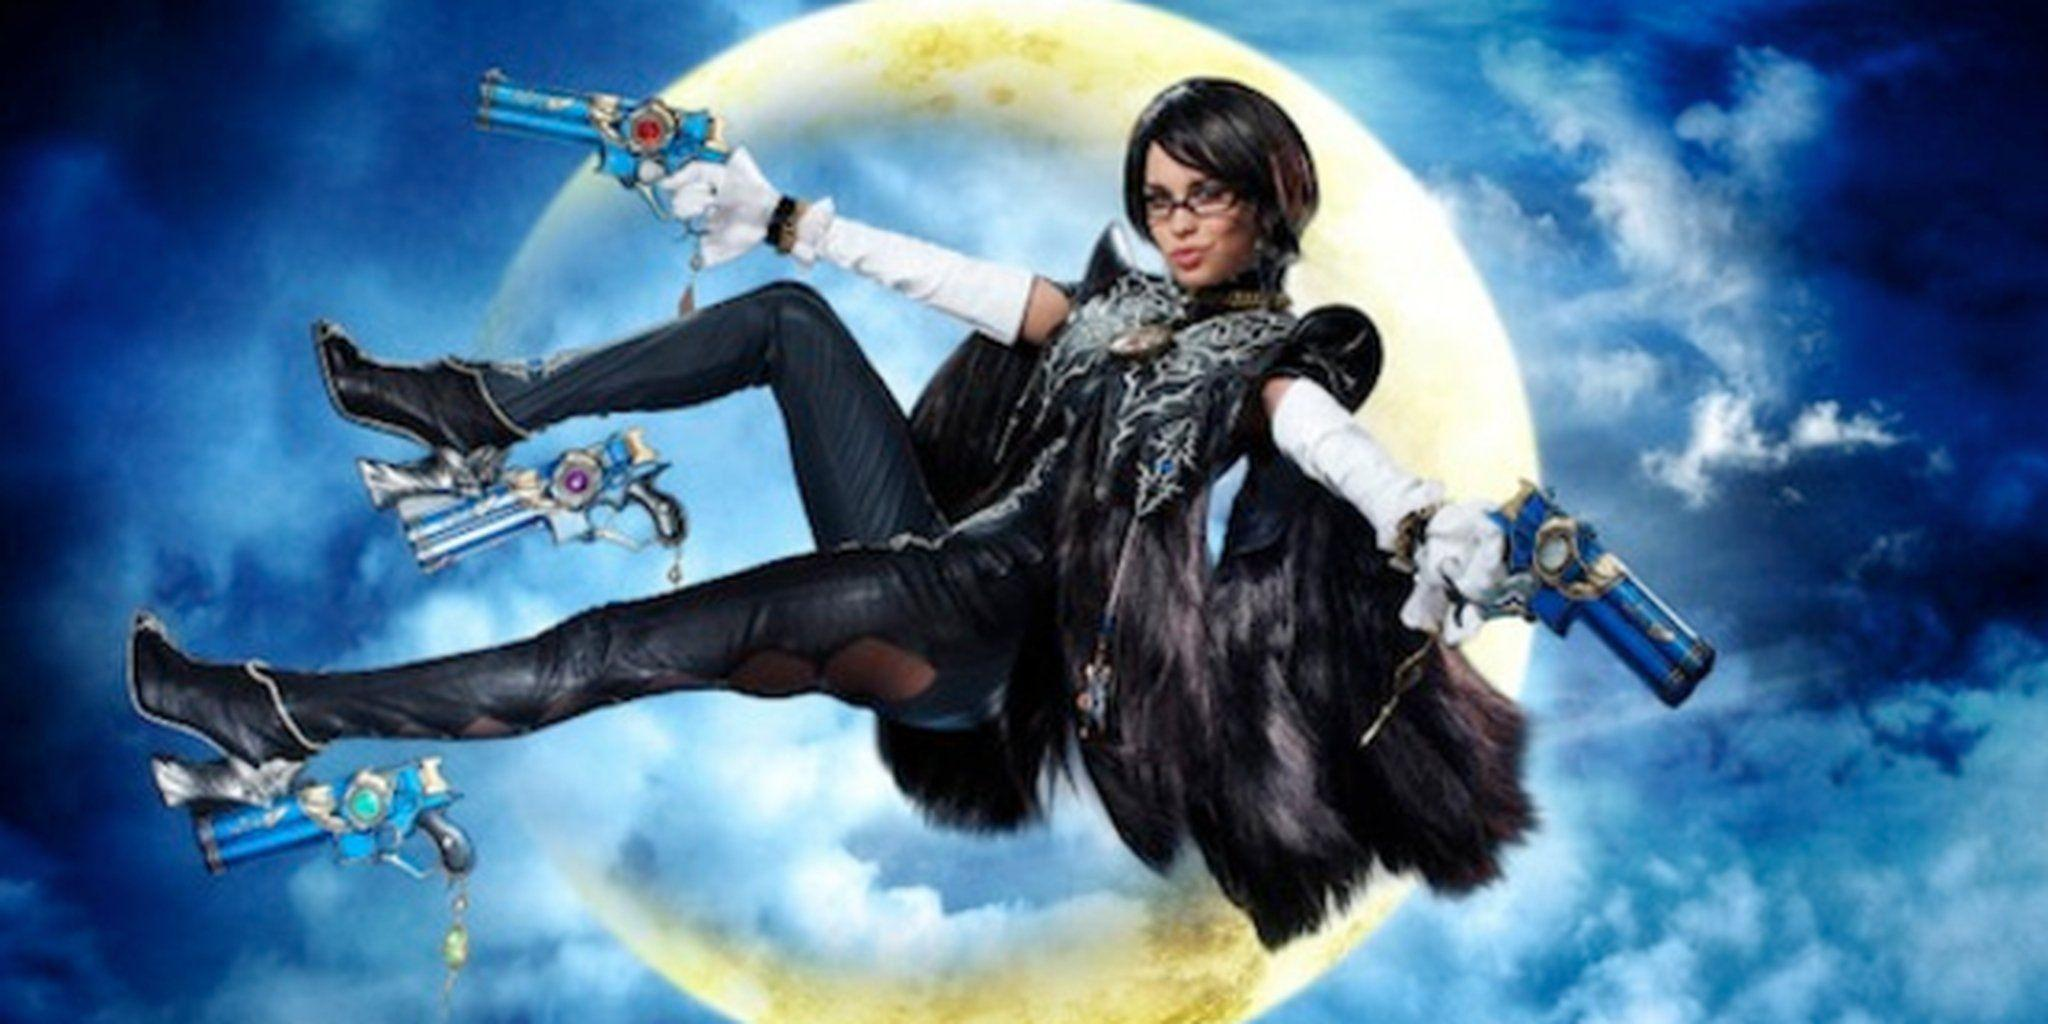 A 'Playboy' Playmate is the face of a new Bayonetta 2 campaign